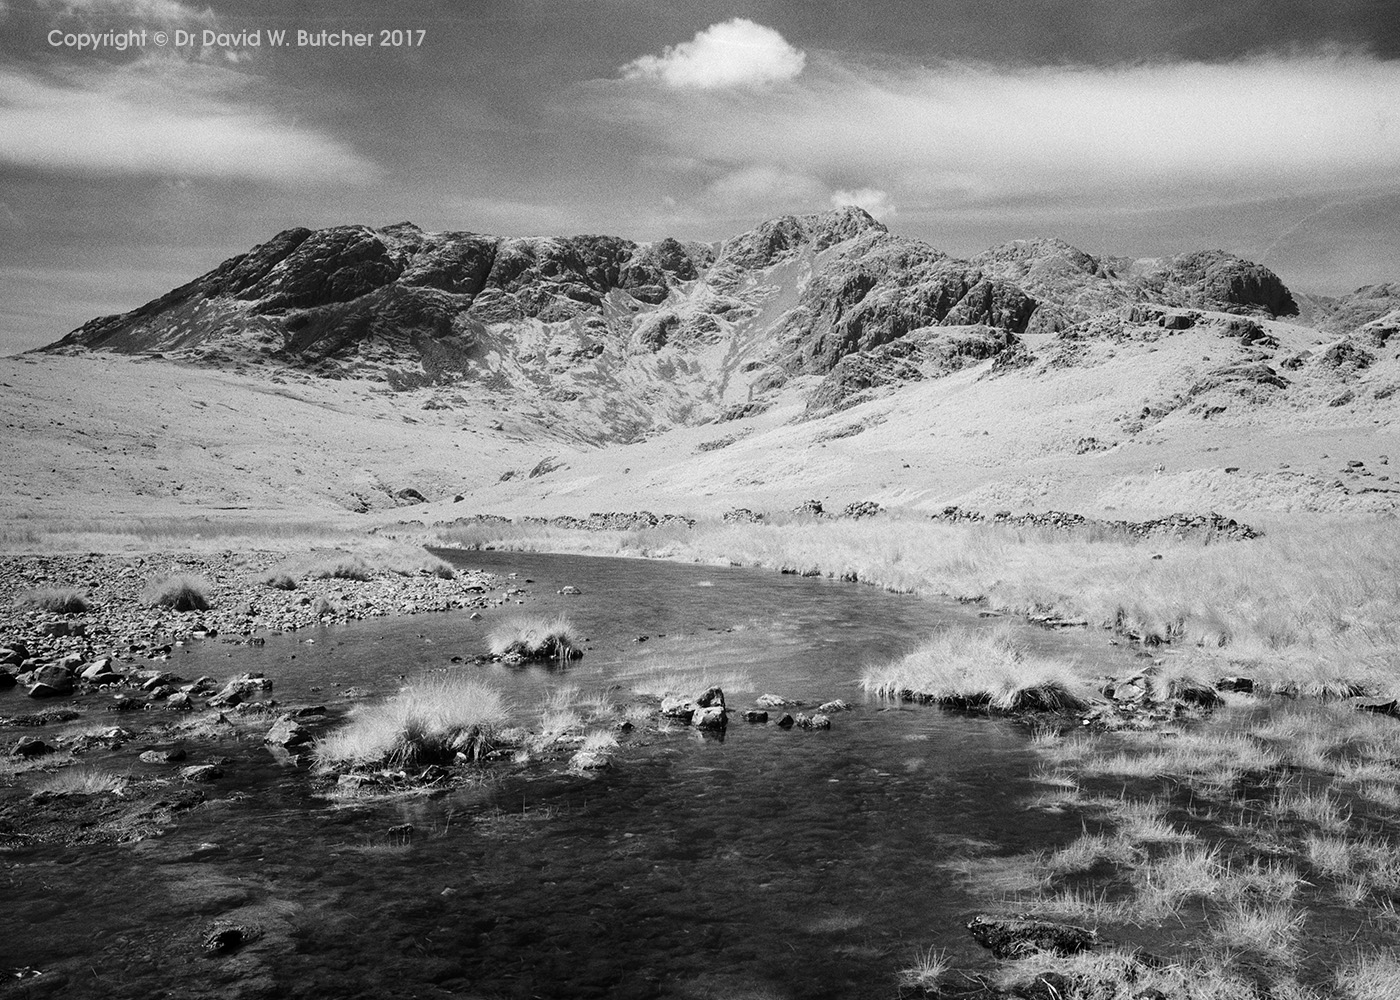 Scafell Pike and the River Esk, infrared, Boot, Eskdale, Lake District